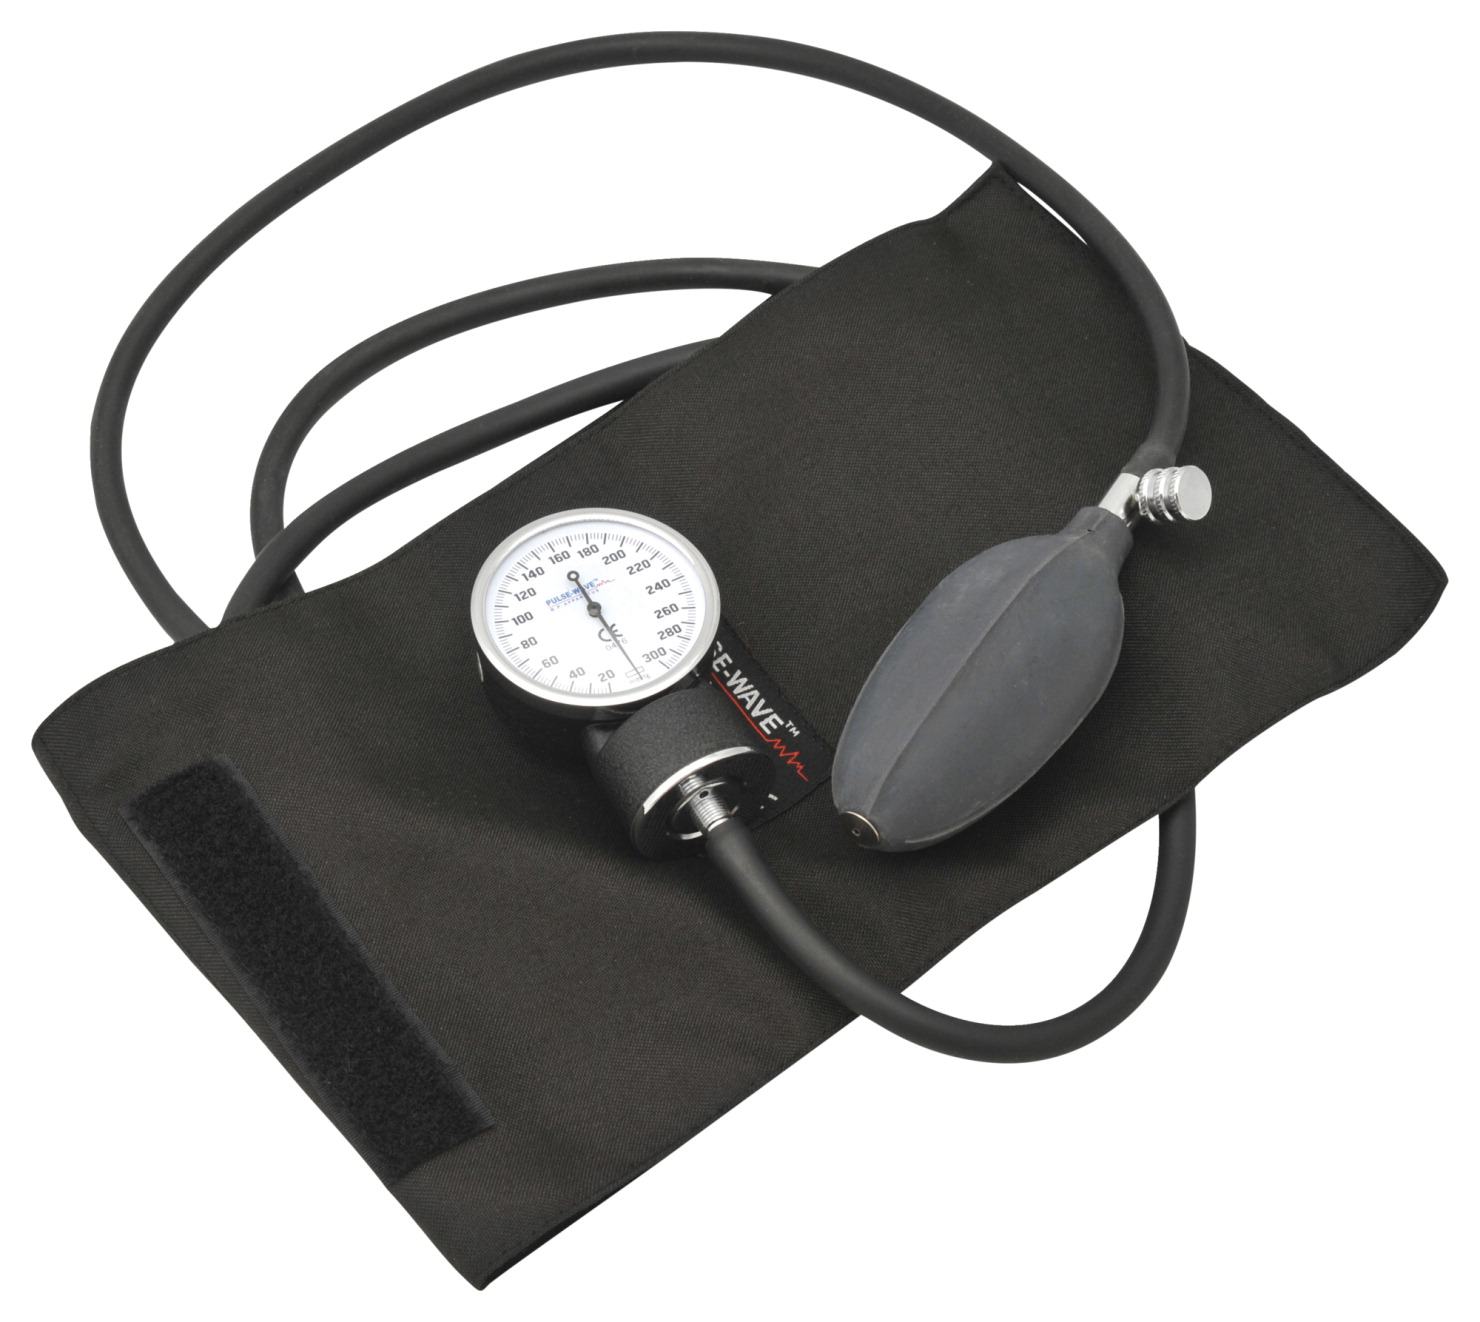 EISCO Blood Pressure Apparatus